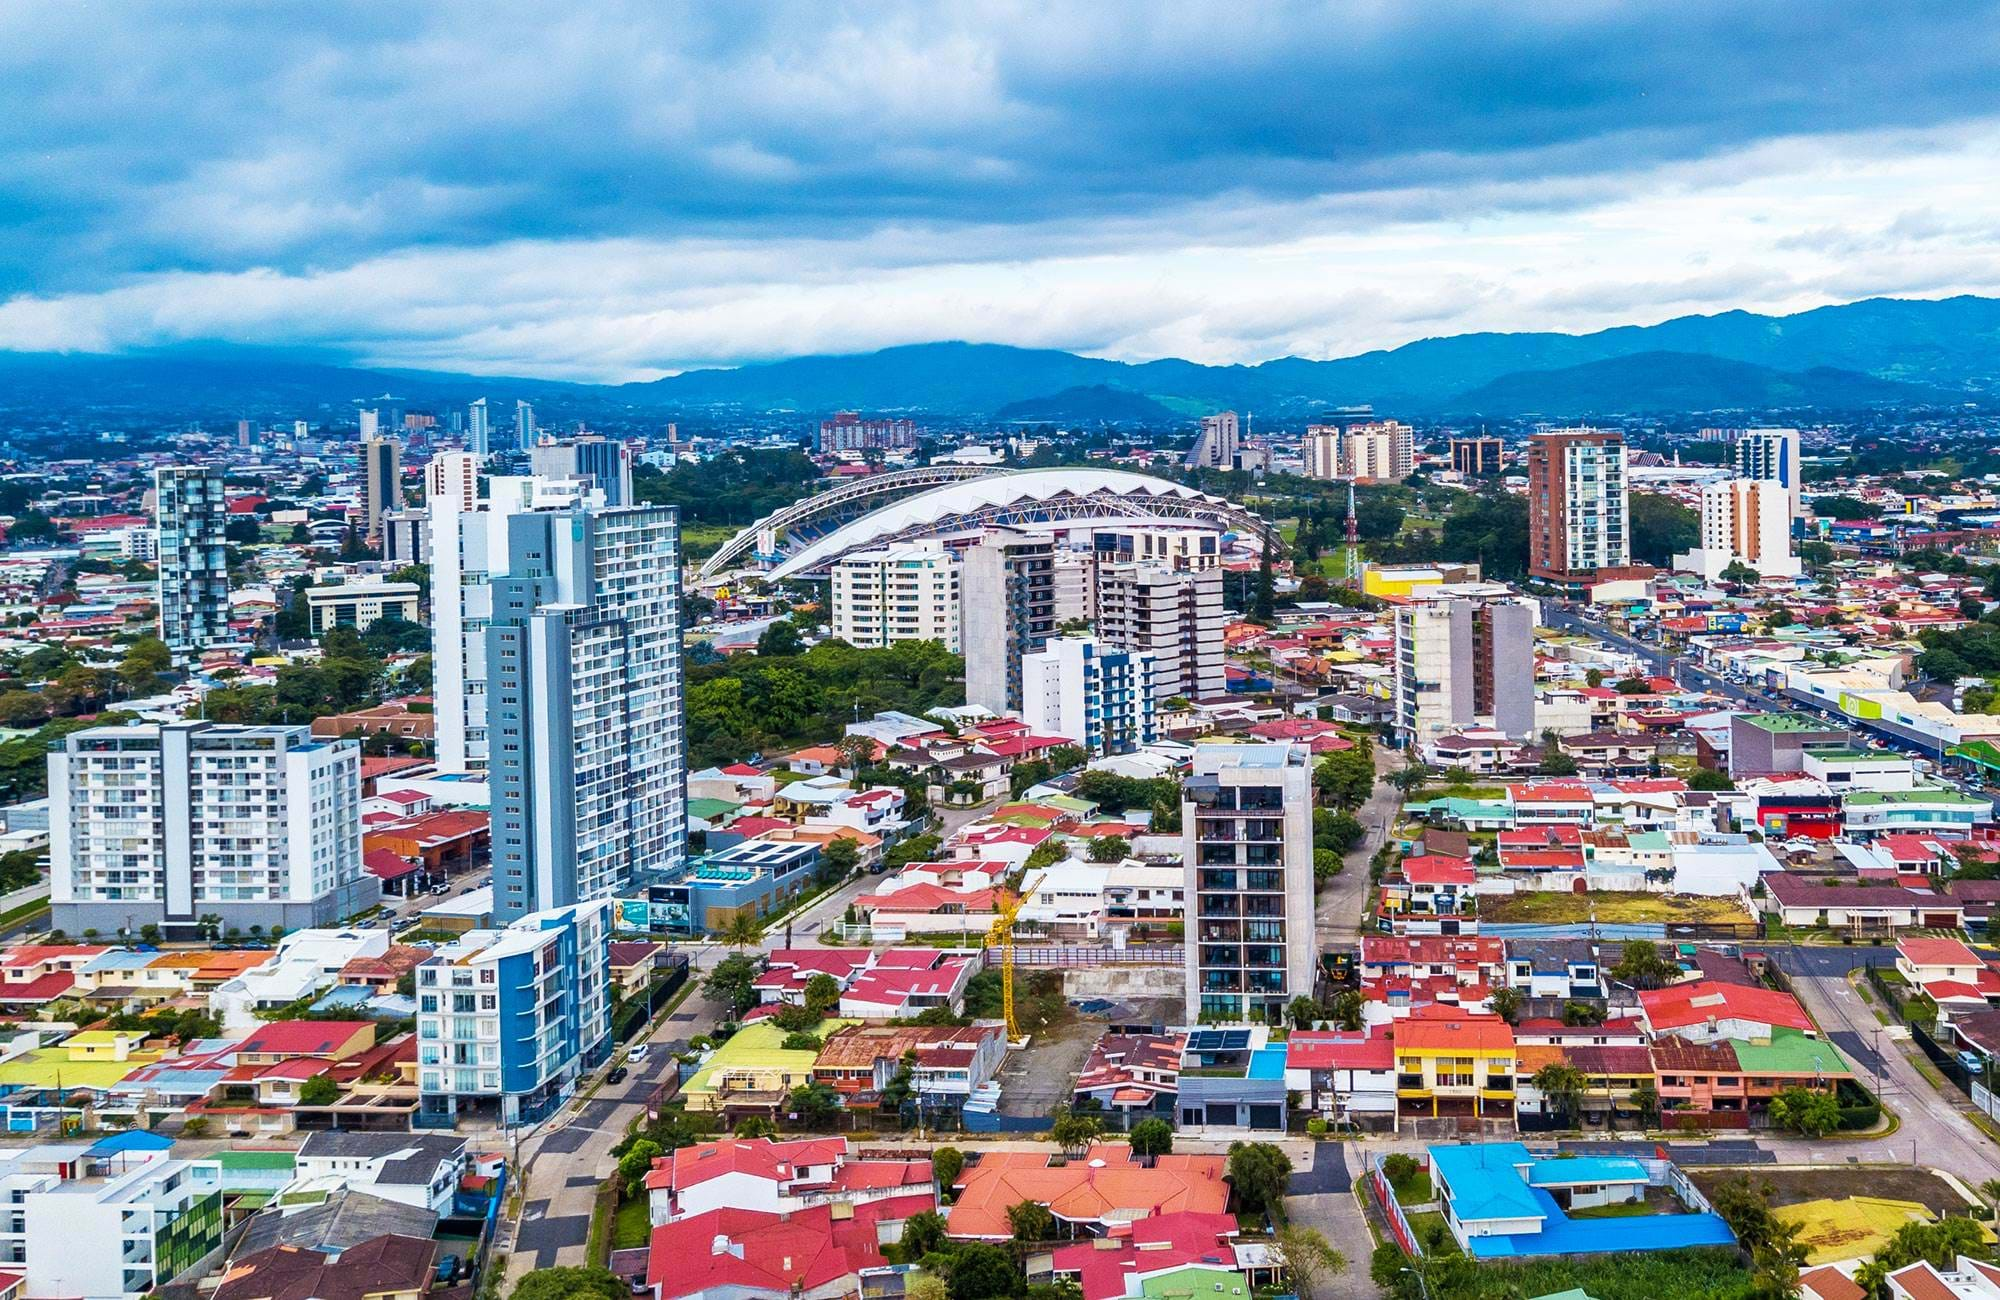 san-jose-costa-rica-aerial-city-skyline